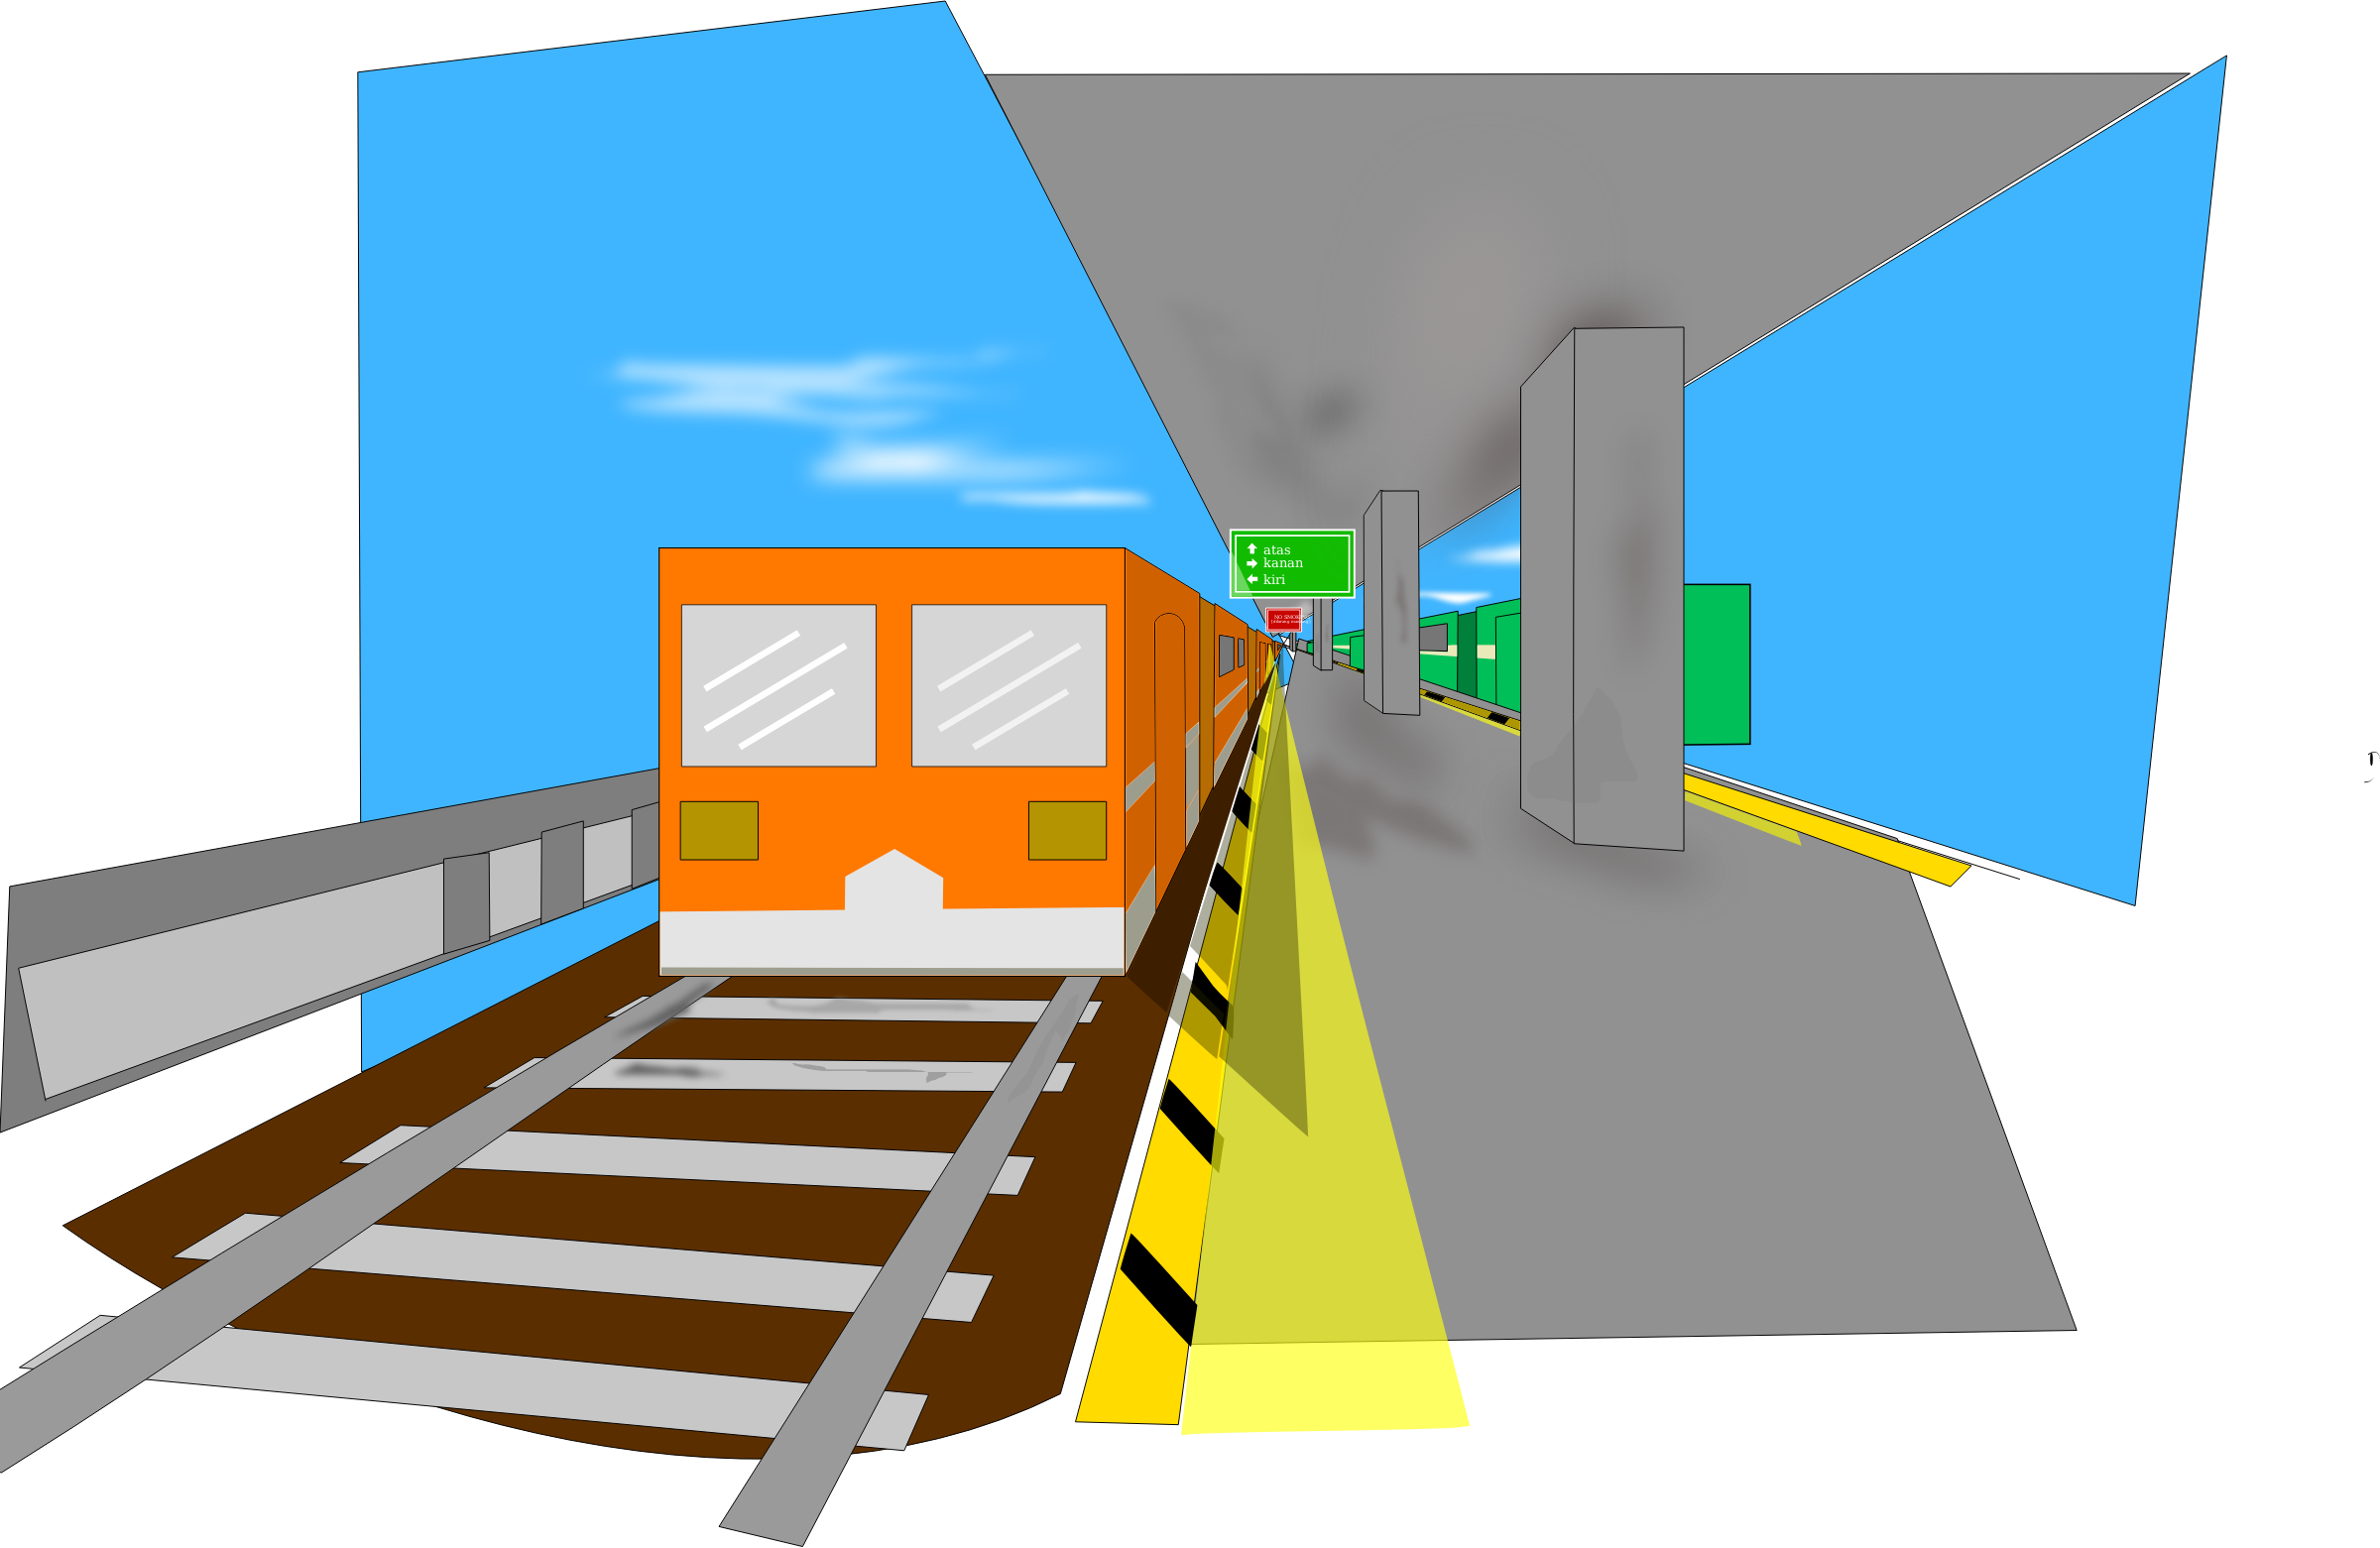 Remix train station big. Staircase clipart animated